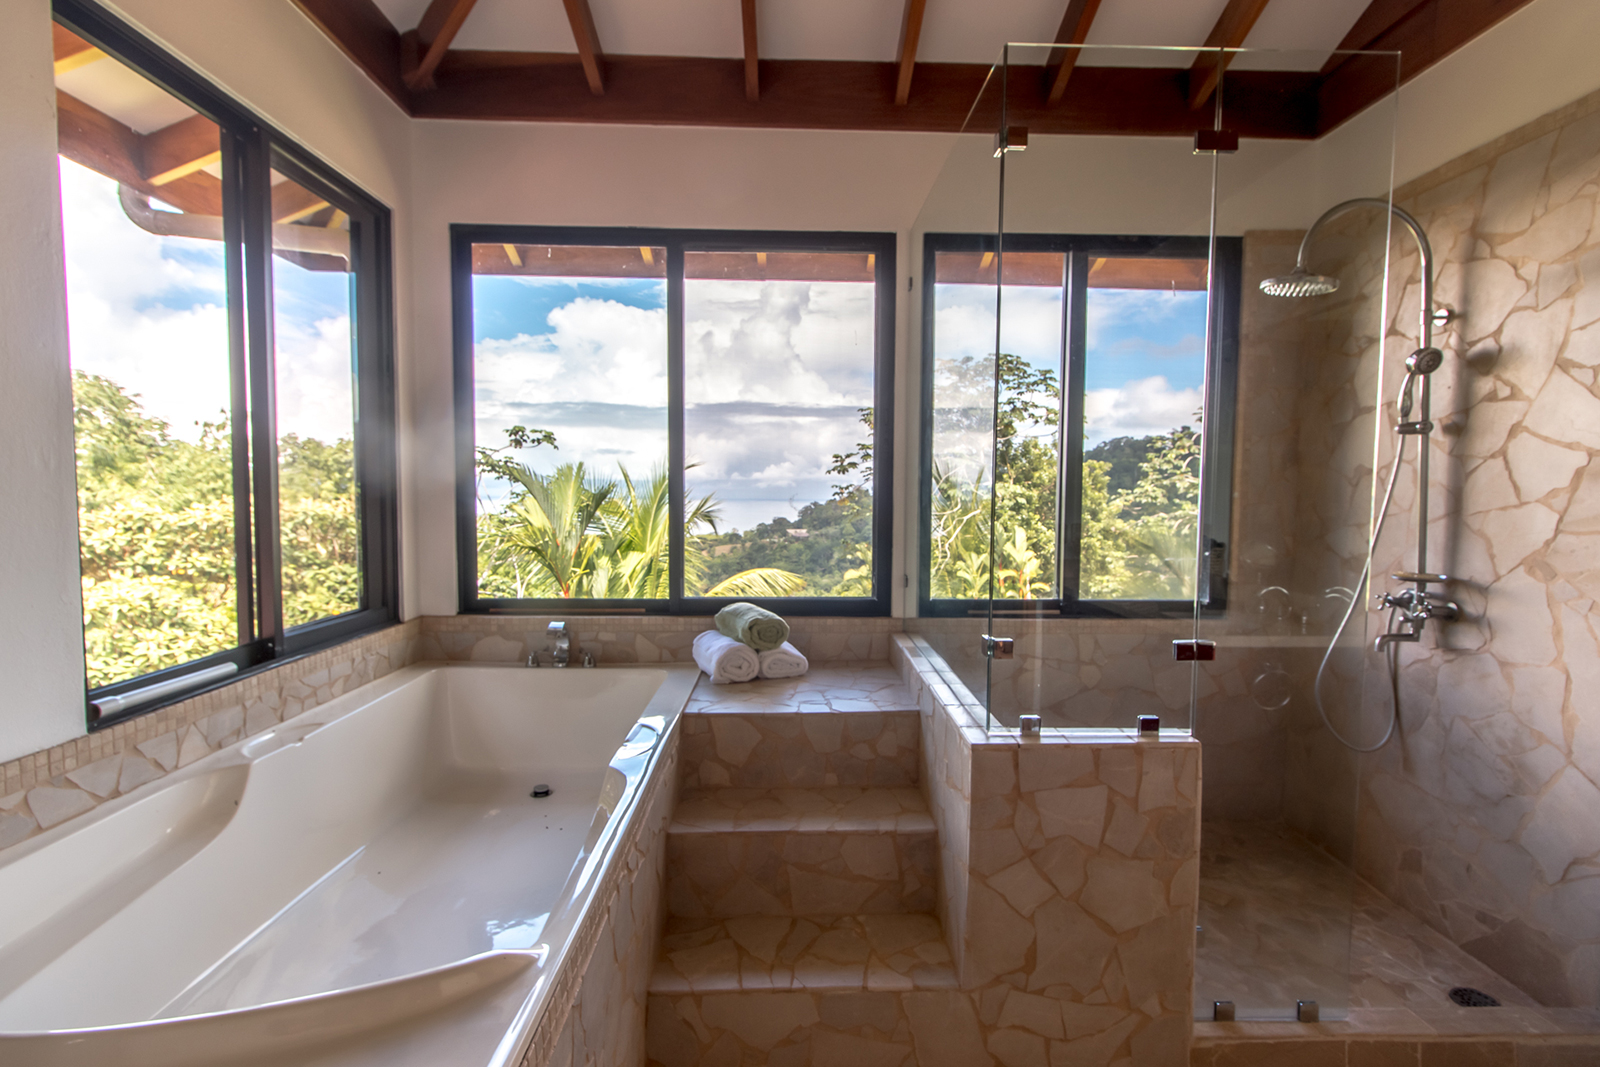 jungle surroundings, ocean views, pool, privacy, beach properties, mountainside, bahia ballena, beach, south pacific real estate